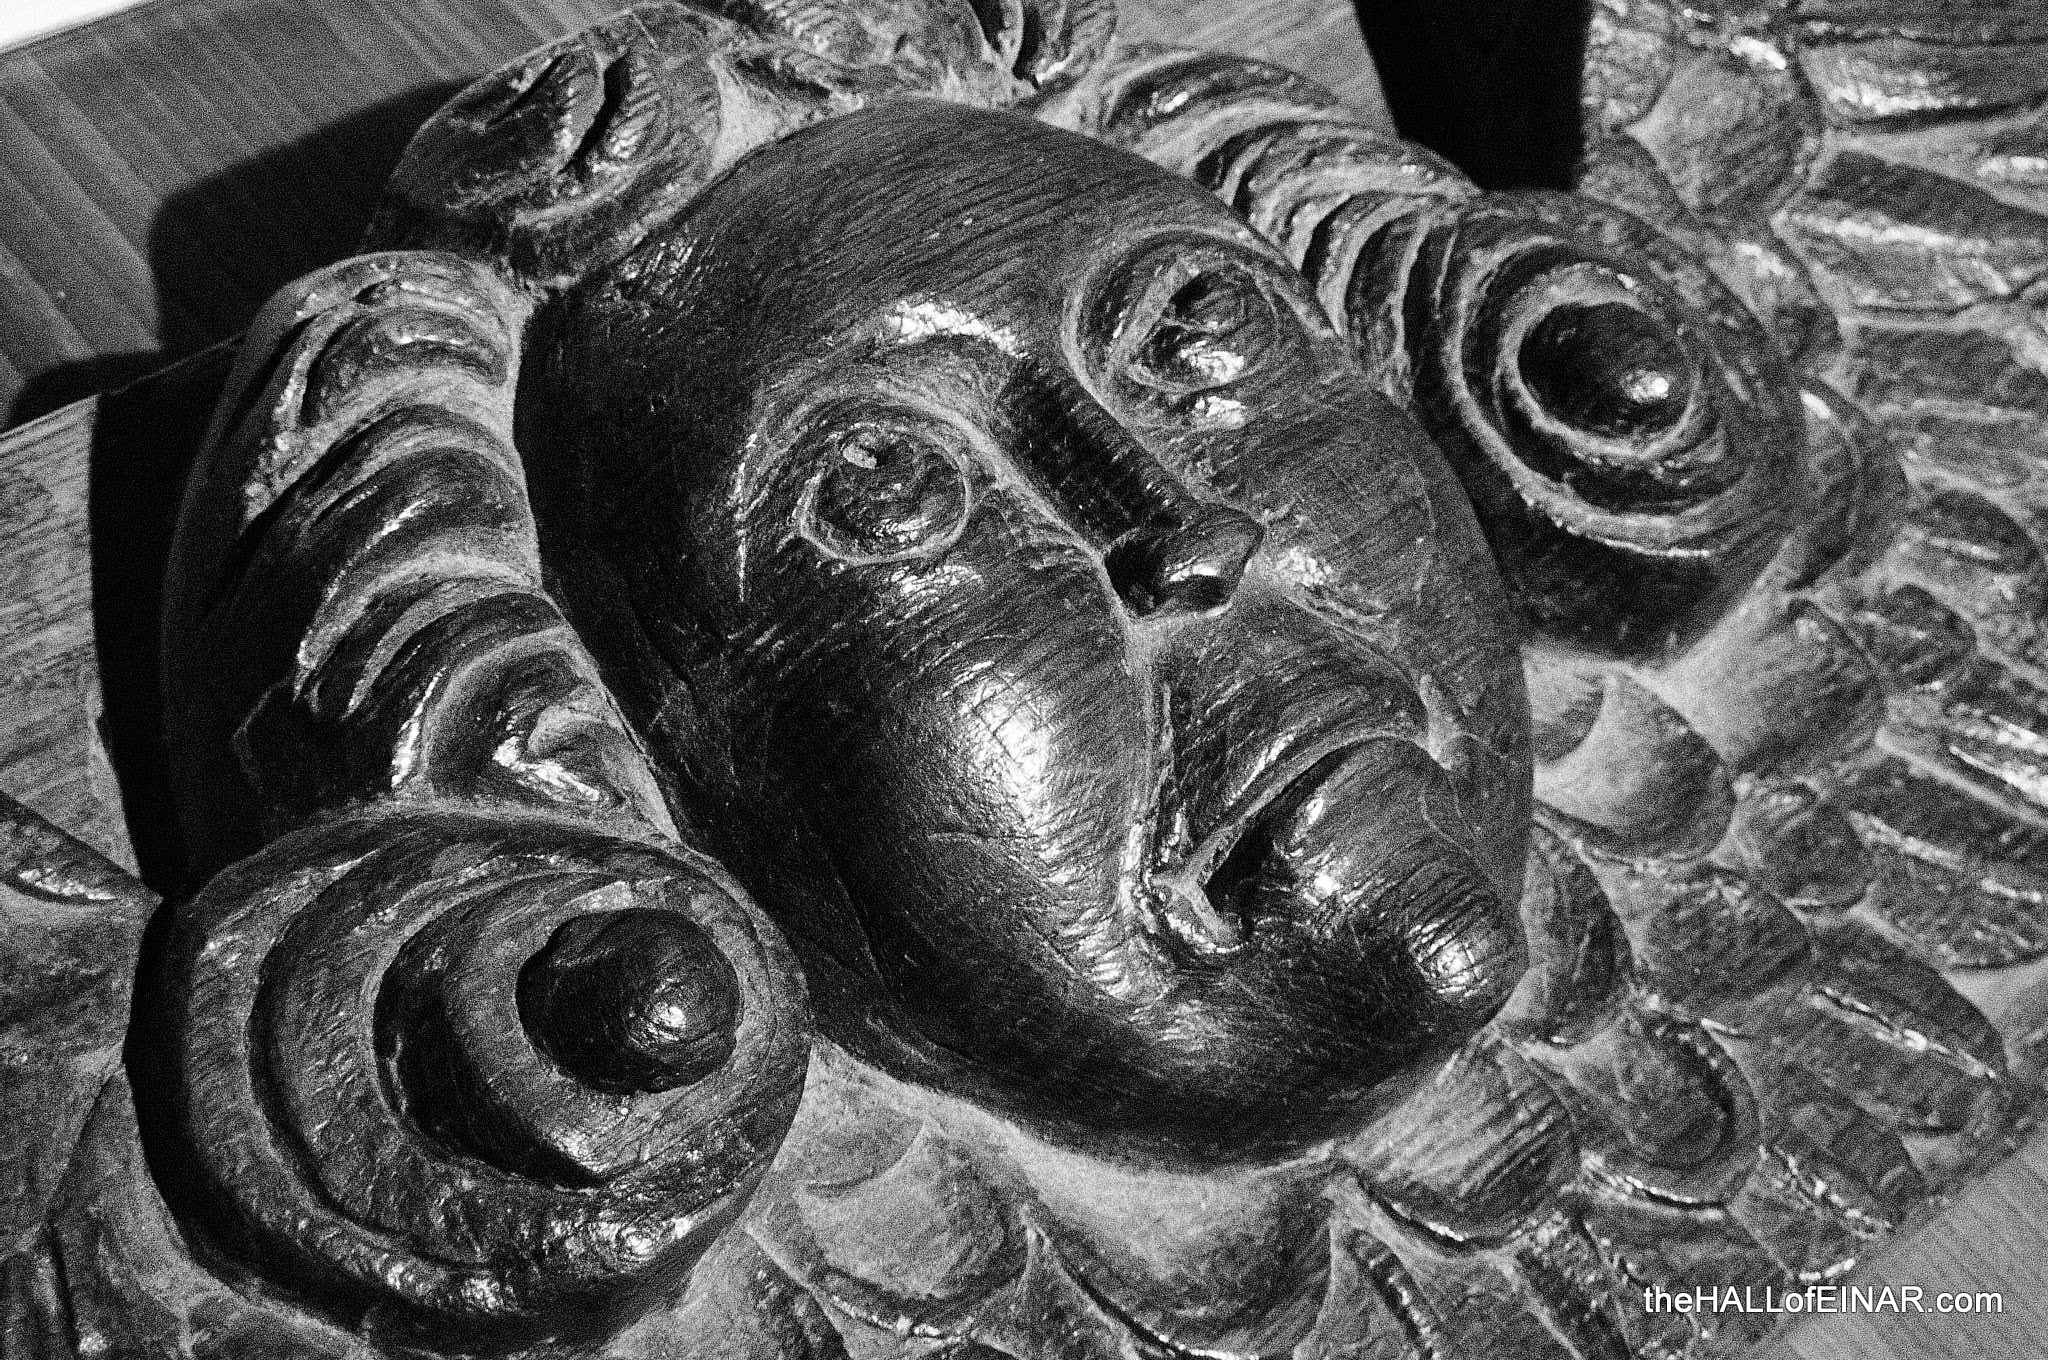 Cathedral Carving - photograph (c) 2016 David Bailey (not the)